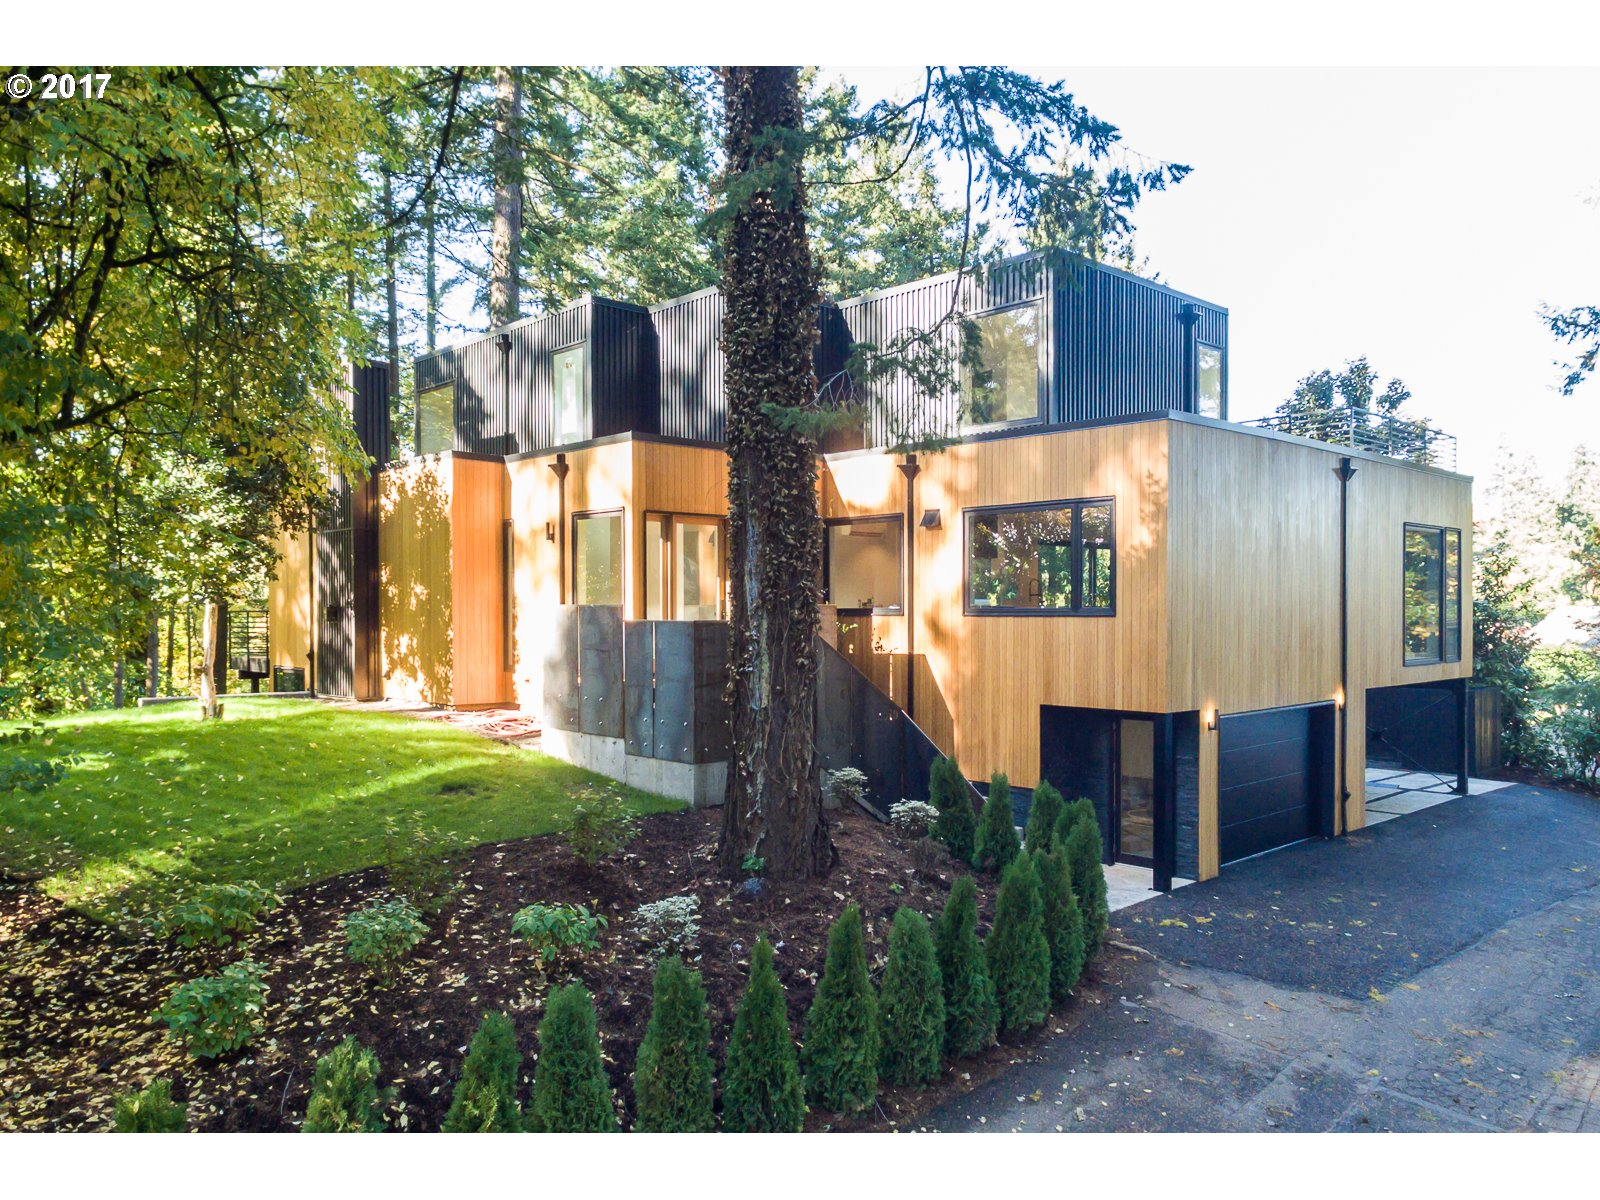 3919 SOUTHSHORE BLVD, Lake Oswego, OR 97035